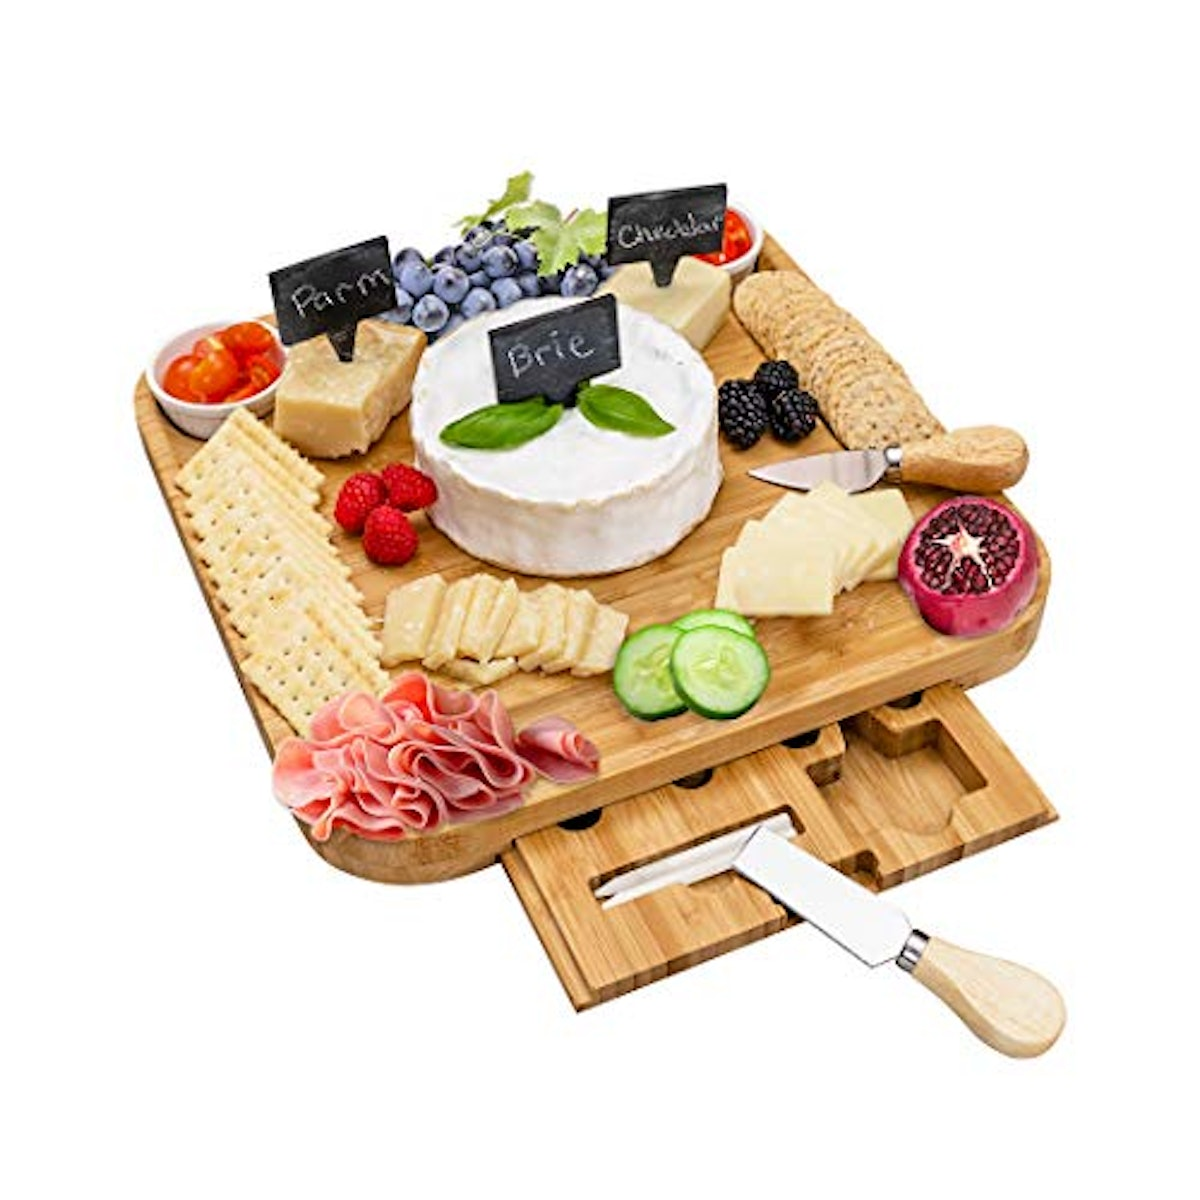 Lavastic Cheese Board and Knife Set